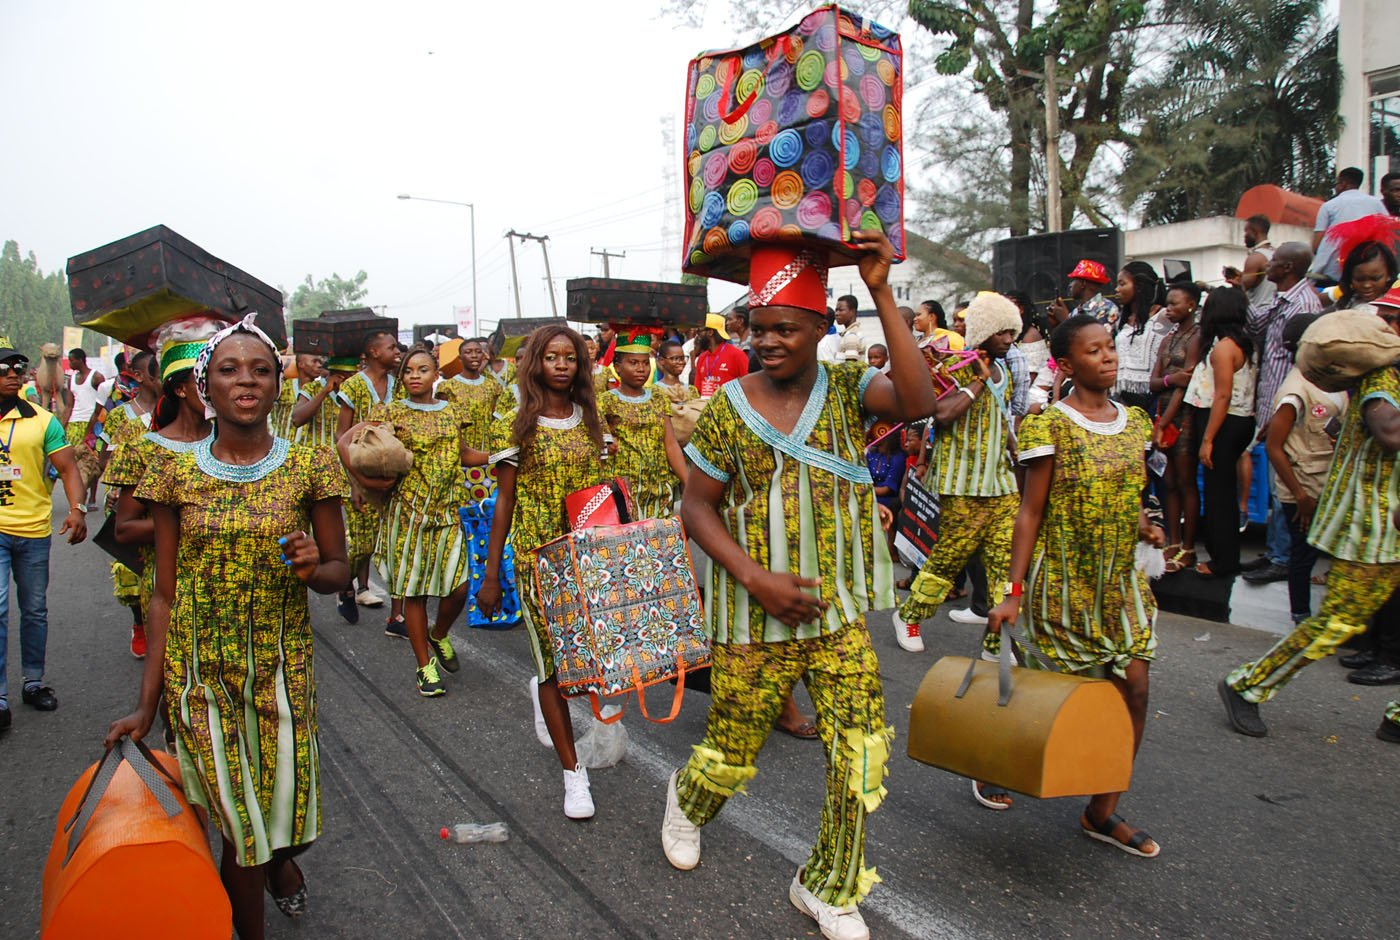 Members of Freedom Band wearing costume Depicting Migration during the Main Event of the 2017 Carnival Calabar in Cross River State Yesterday. Photo: Nwankpa Chijioke